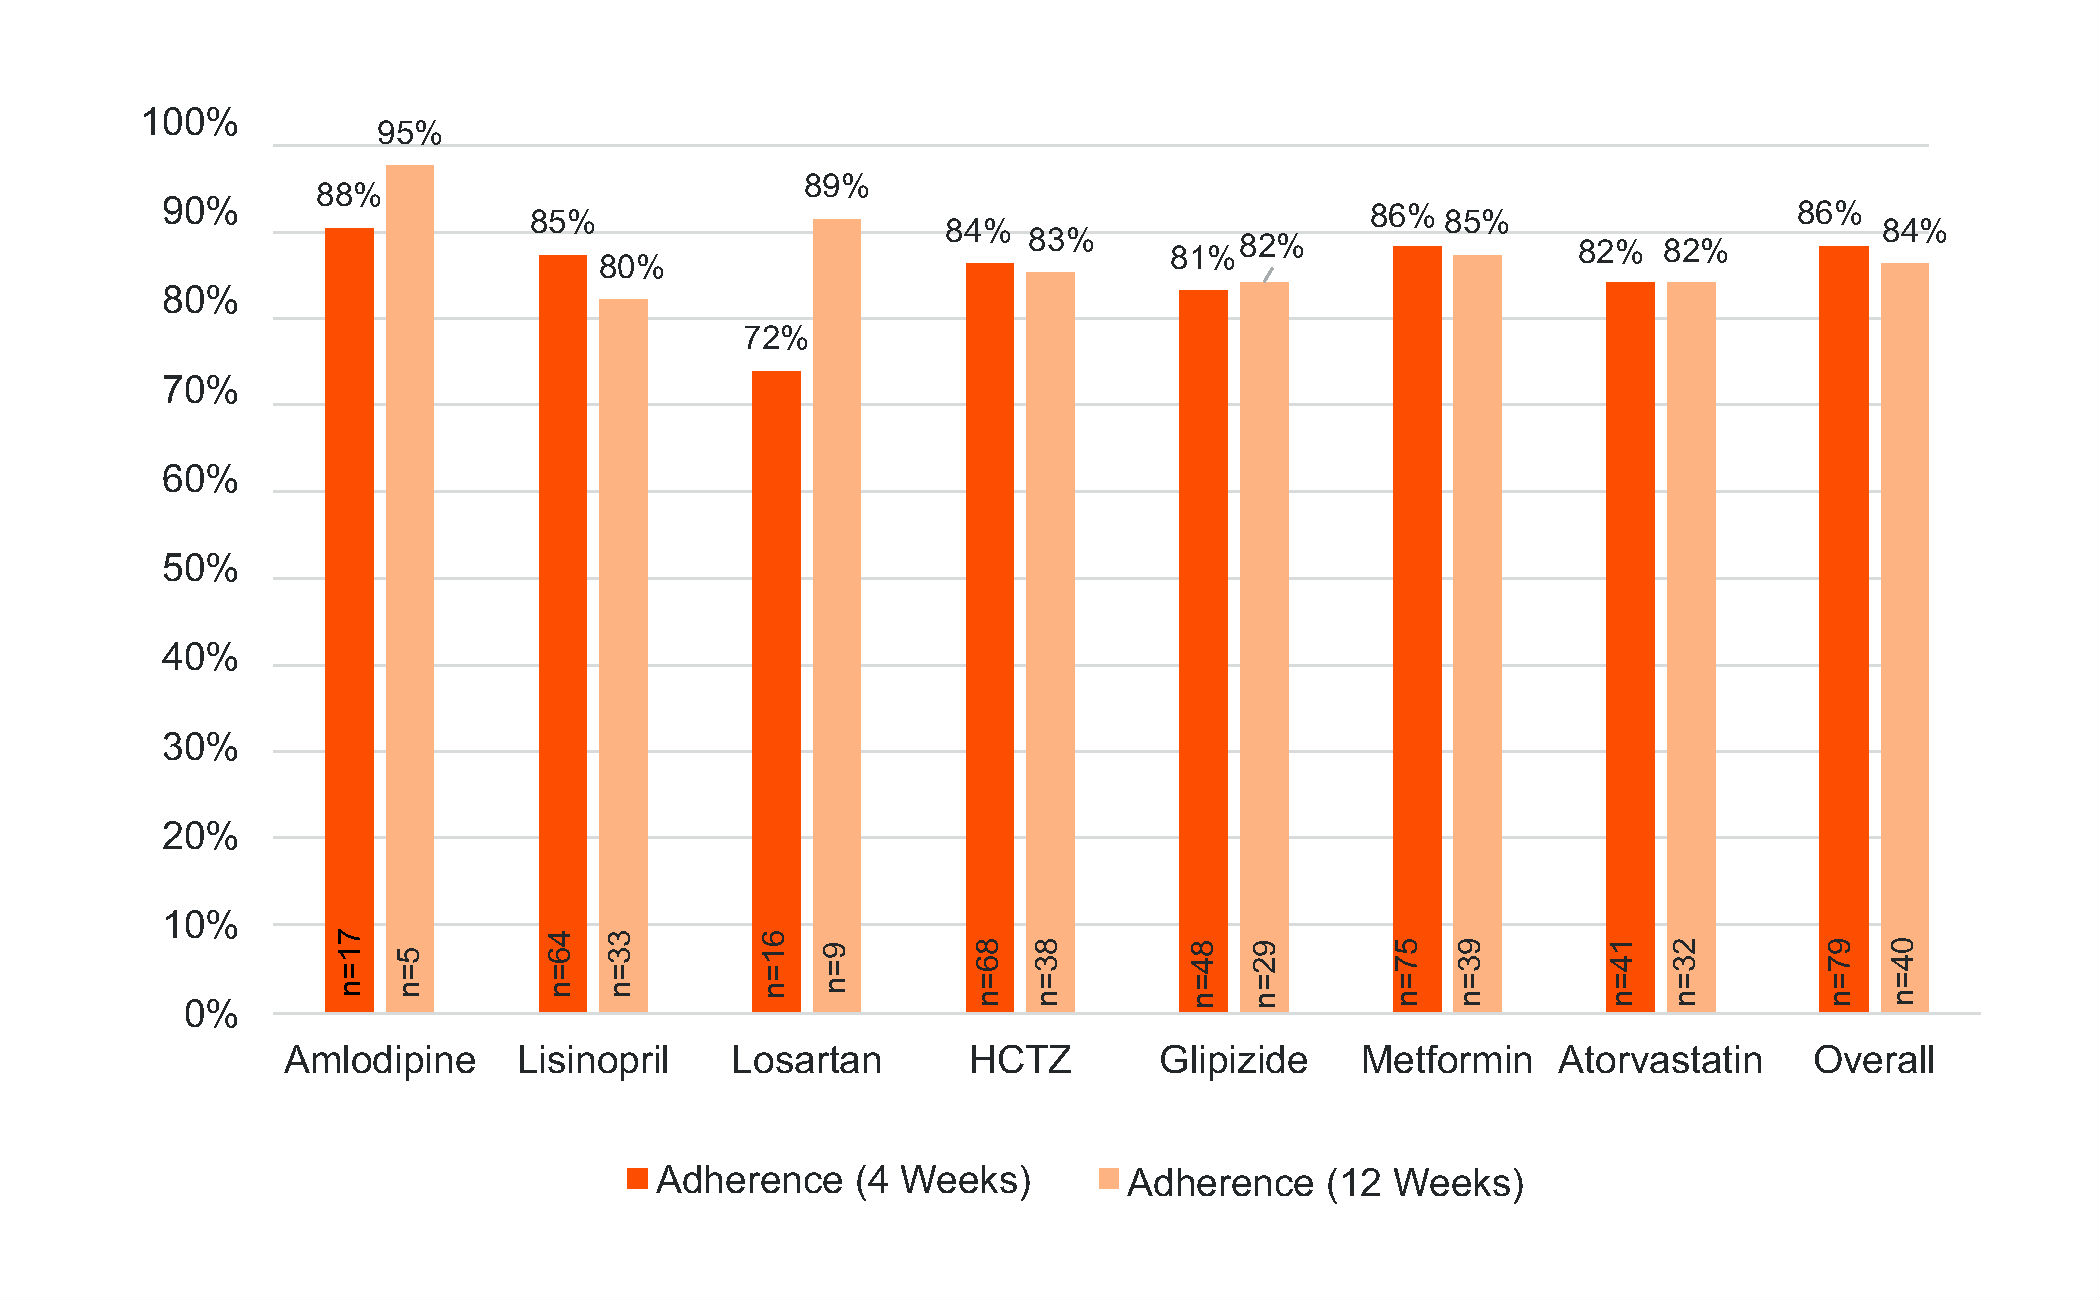 2009 04 30 who draws the line pt one feed - Figure 4 Ingestion Adherence For Dmo Subjects Measured By Dmo Note Adherence For The First 4 Weeks Includes Both 4 Week Dmo And 12 Week Dmo Adherence For